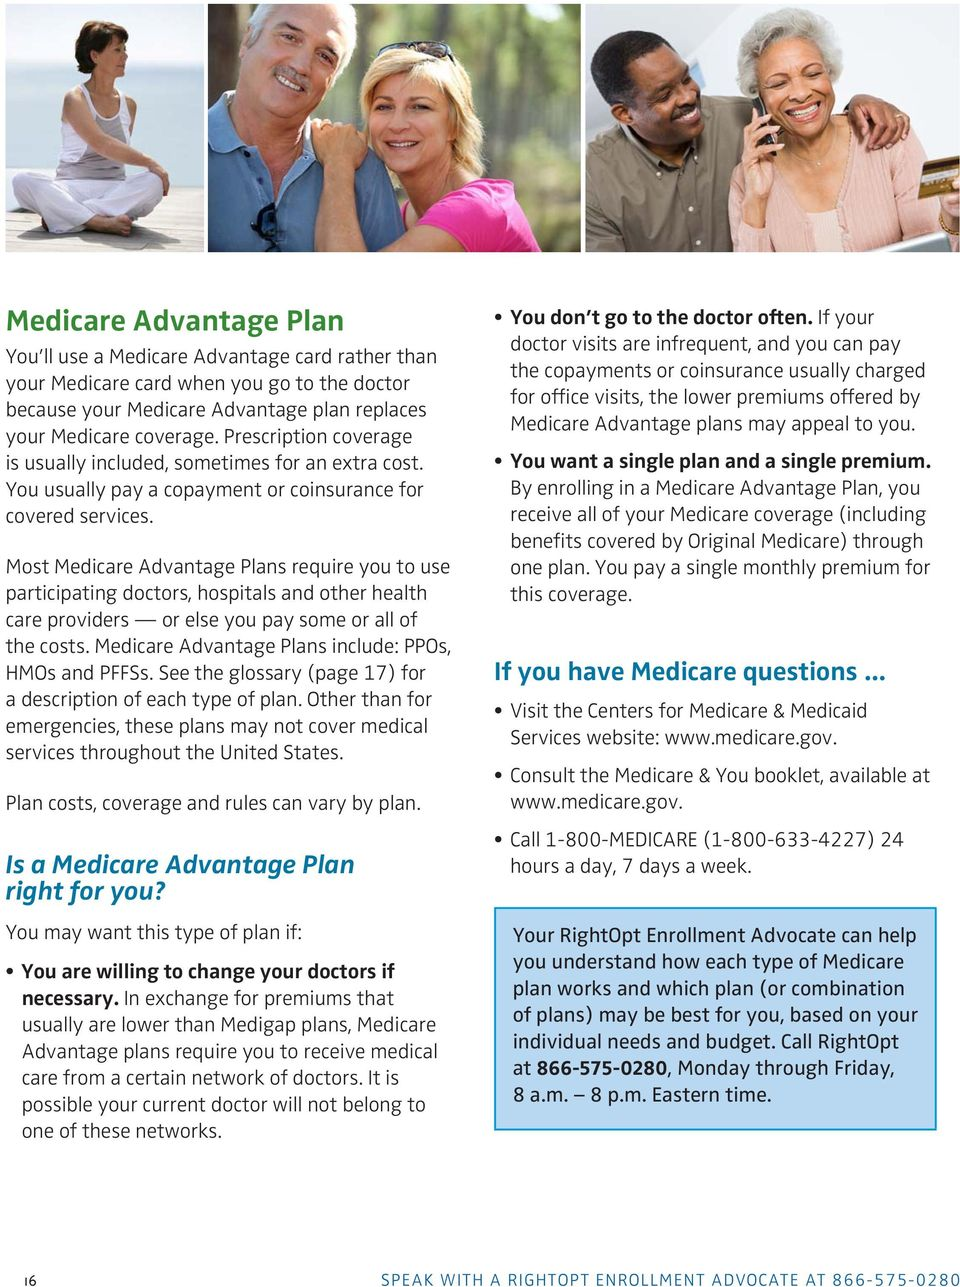 Most Medicare Advantage Plans require you to use participating doctors, hospitals and other health care providers or else you pay some or all of the costs.